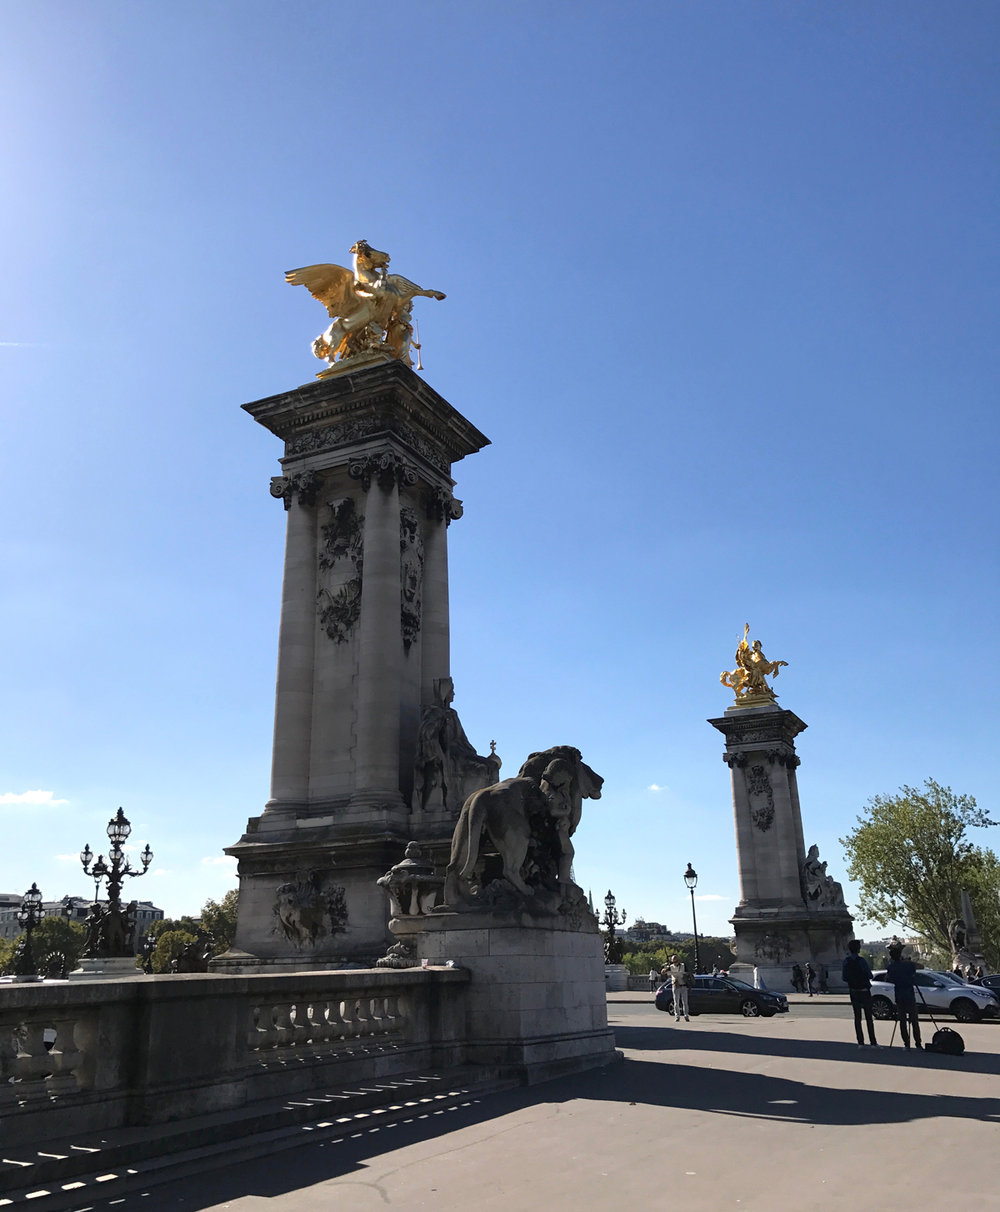 Pont Alexandre III bridge. Check out that gold!